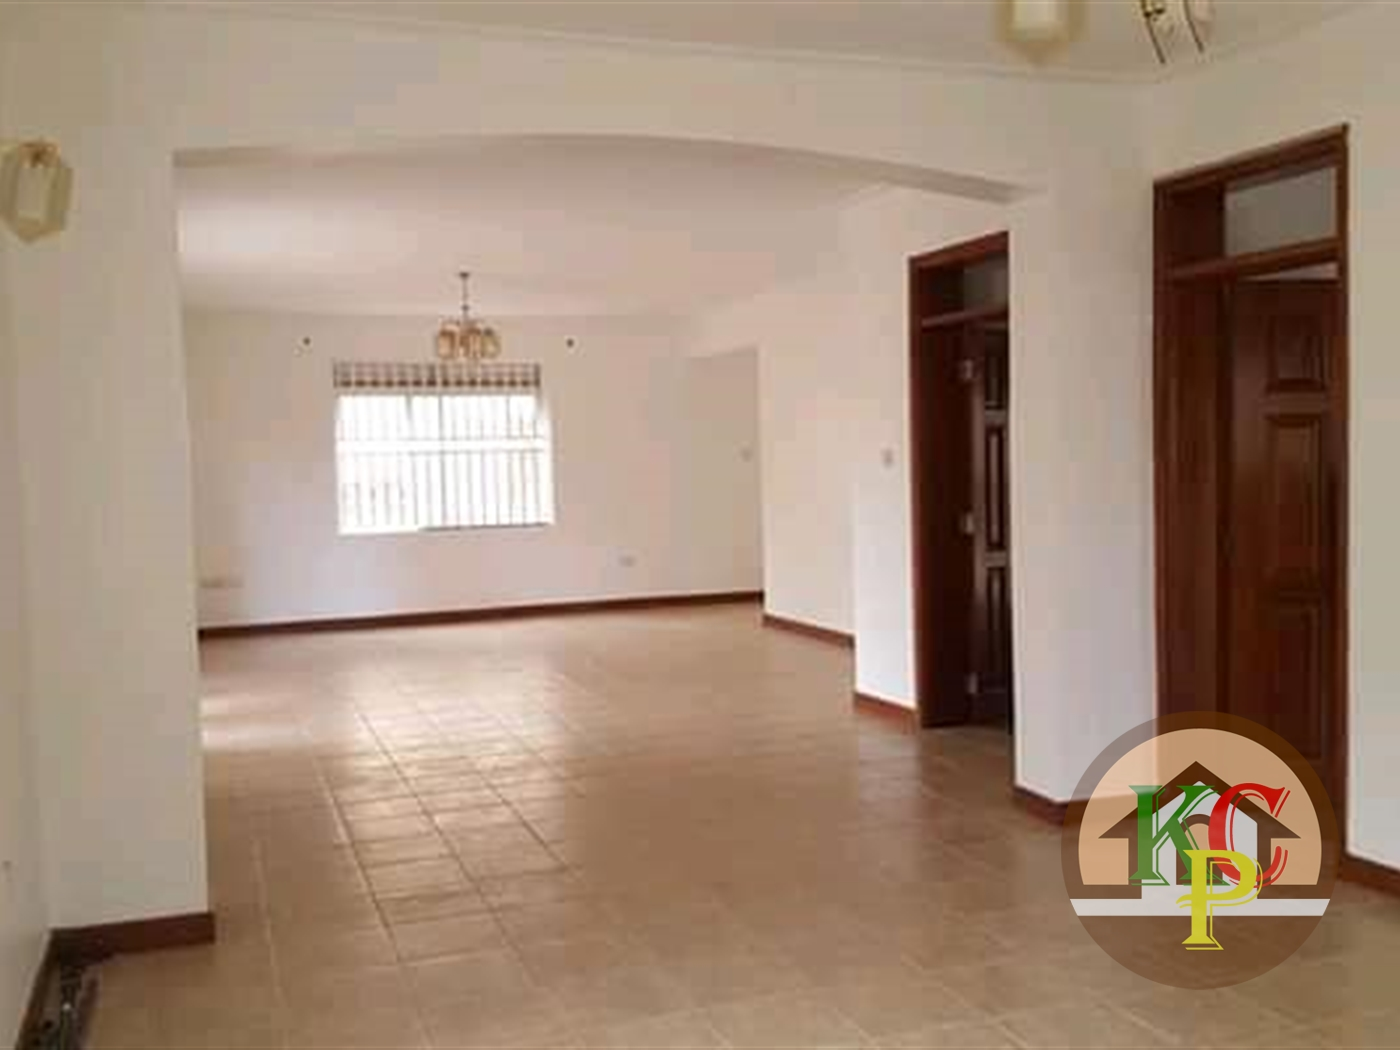 Mansion for rent in Mbuyahill Kampala